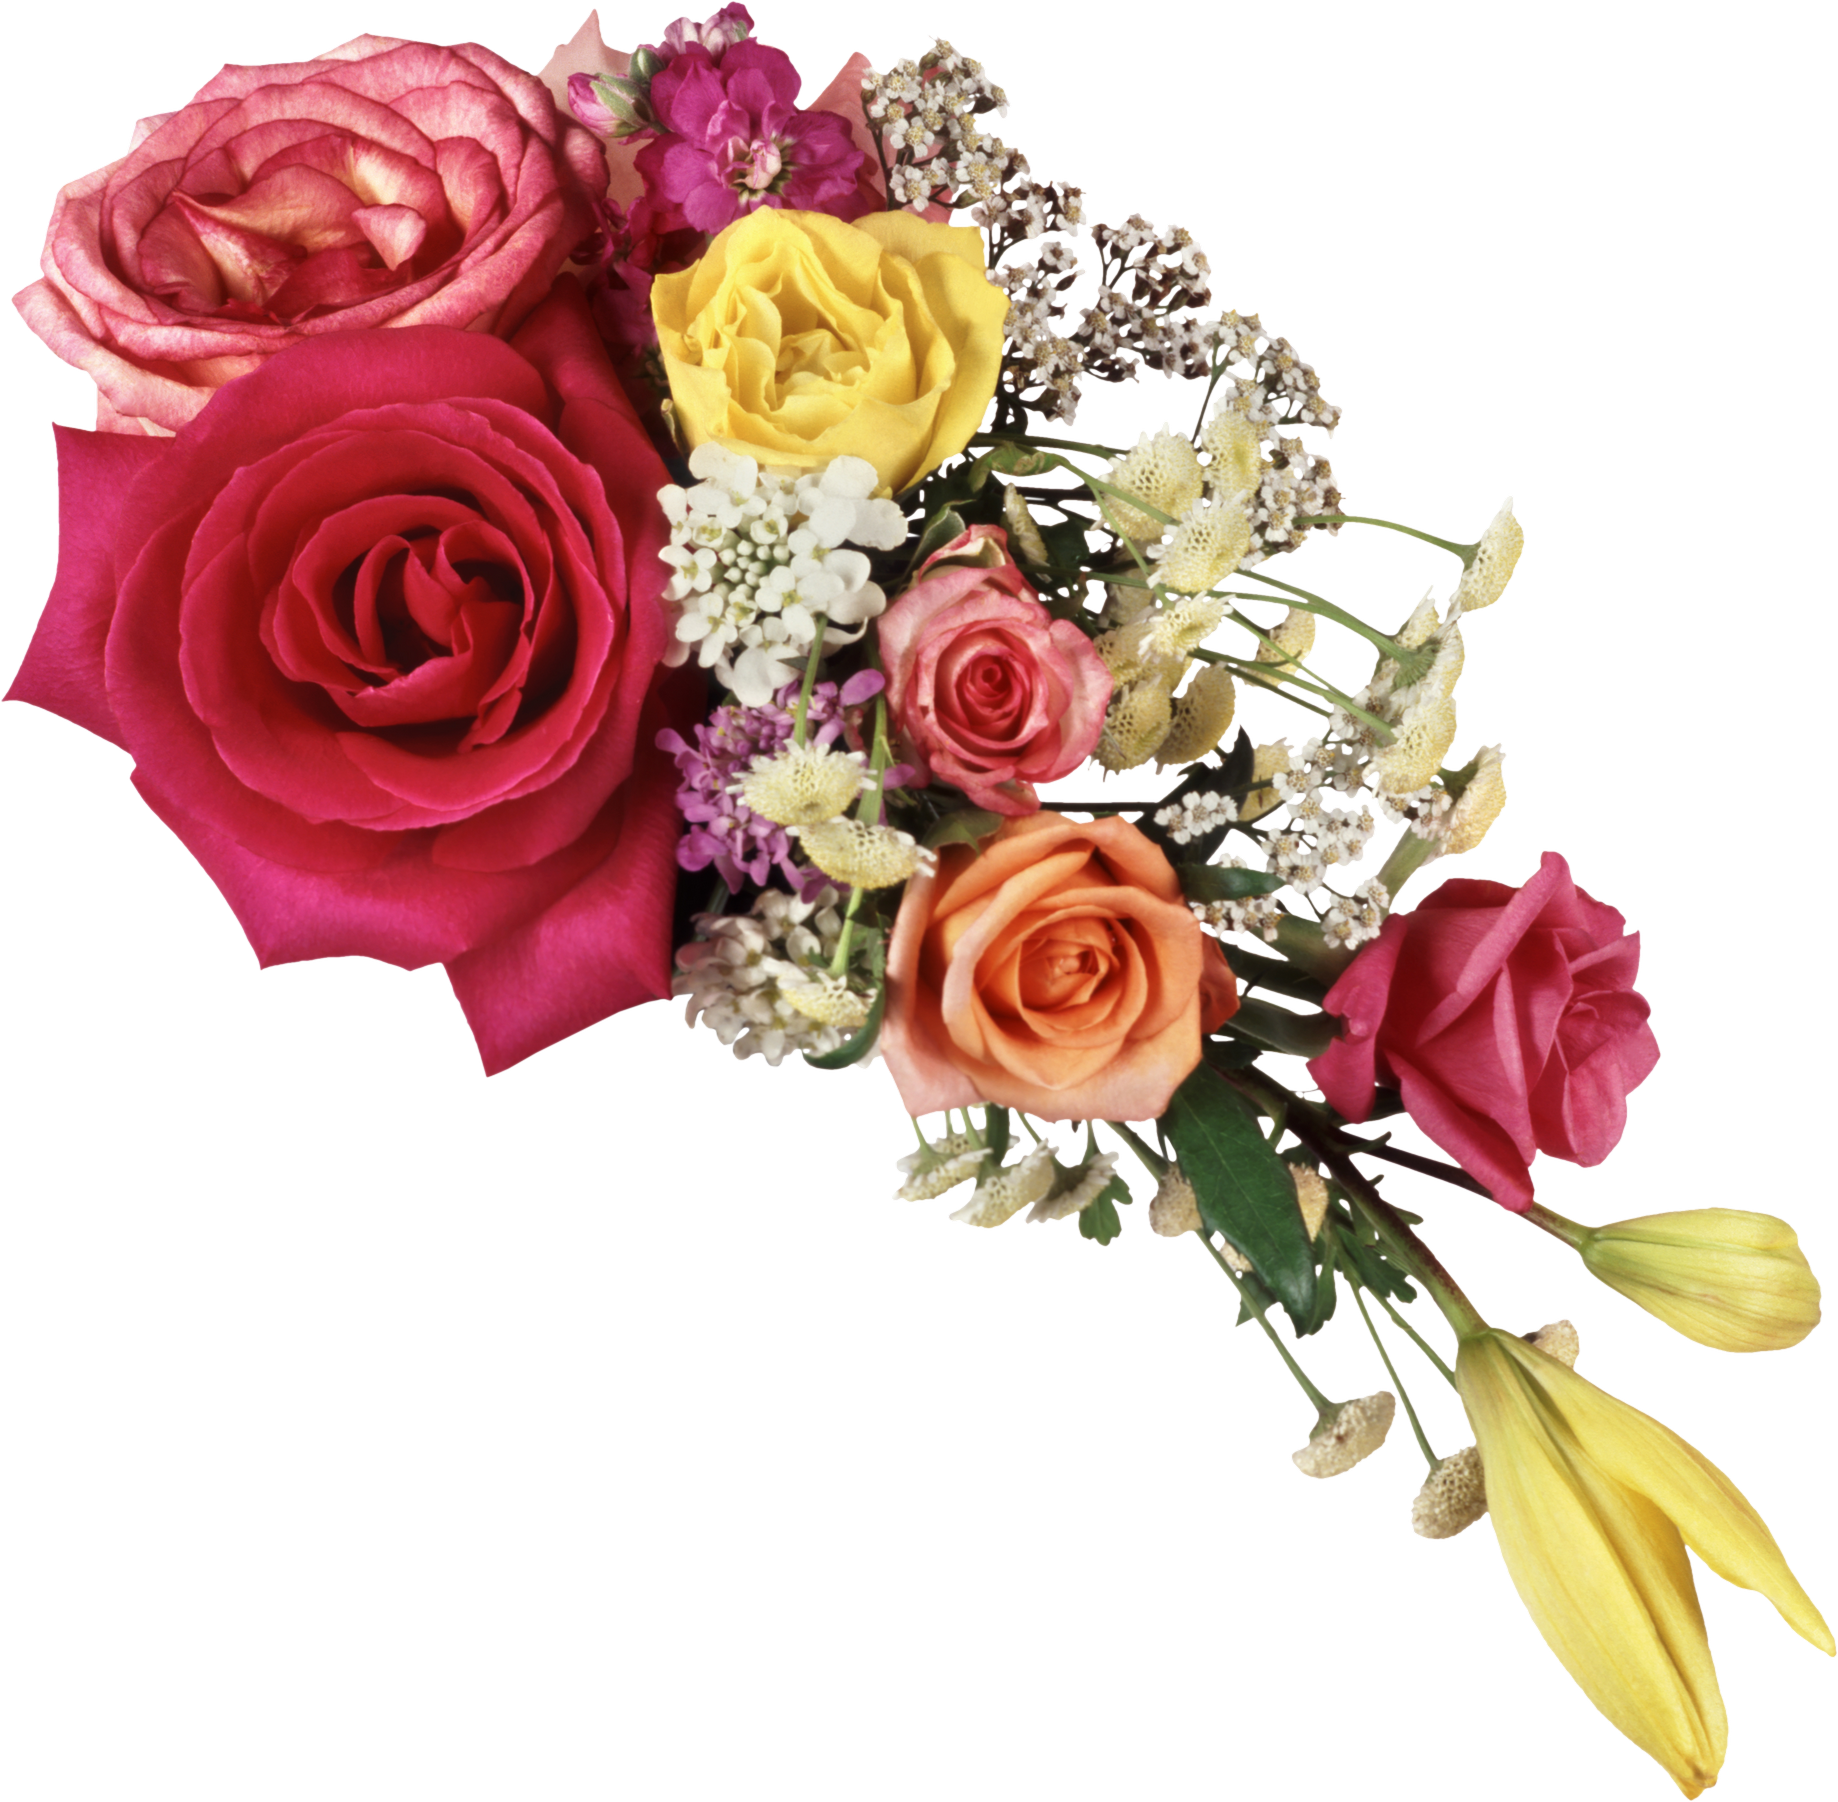 Bouquet Of Flowers PNG Image - PurePNG | Free transparent CC0 PNG Image Library